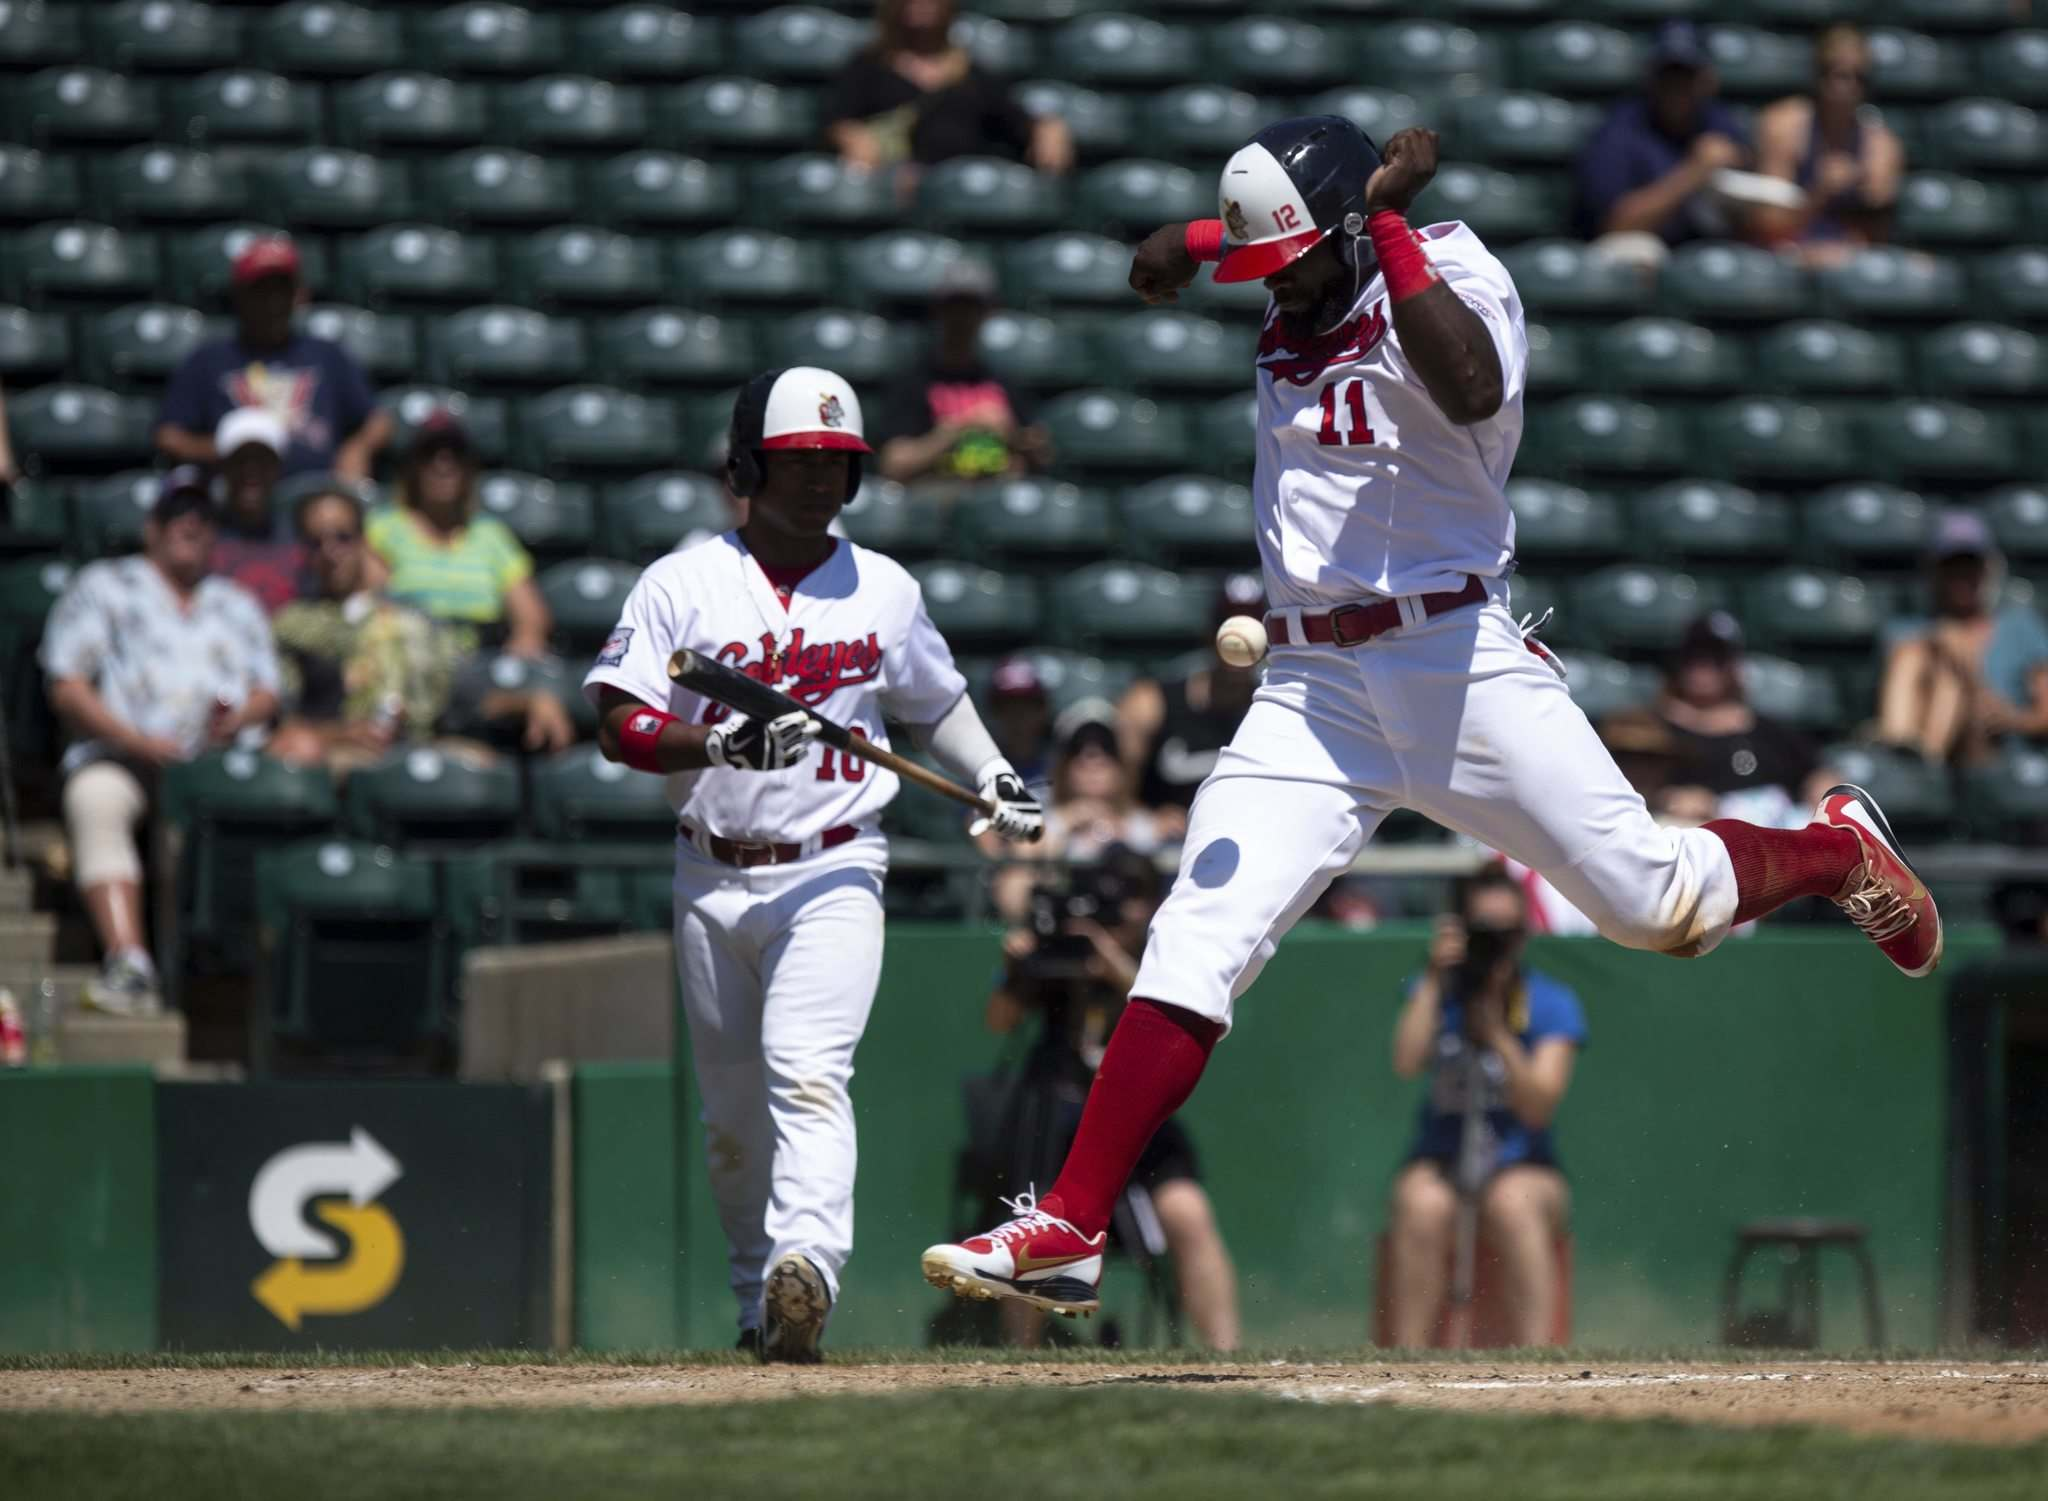 ANDREW RYAN / WINNIPEG FREE PRESS</p><p>Reggie Abercrombie scores the first run for the Winnipeg Goldeyes at Shaw Park Tuesday.</p>